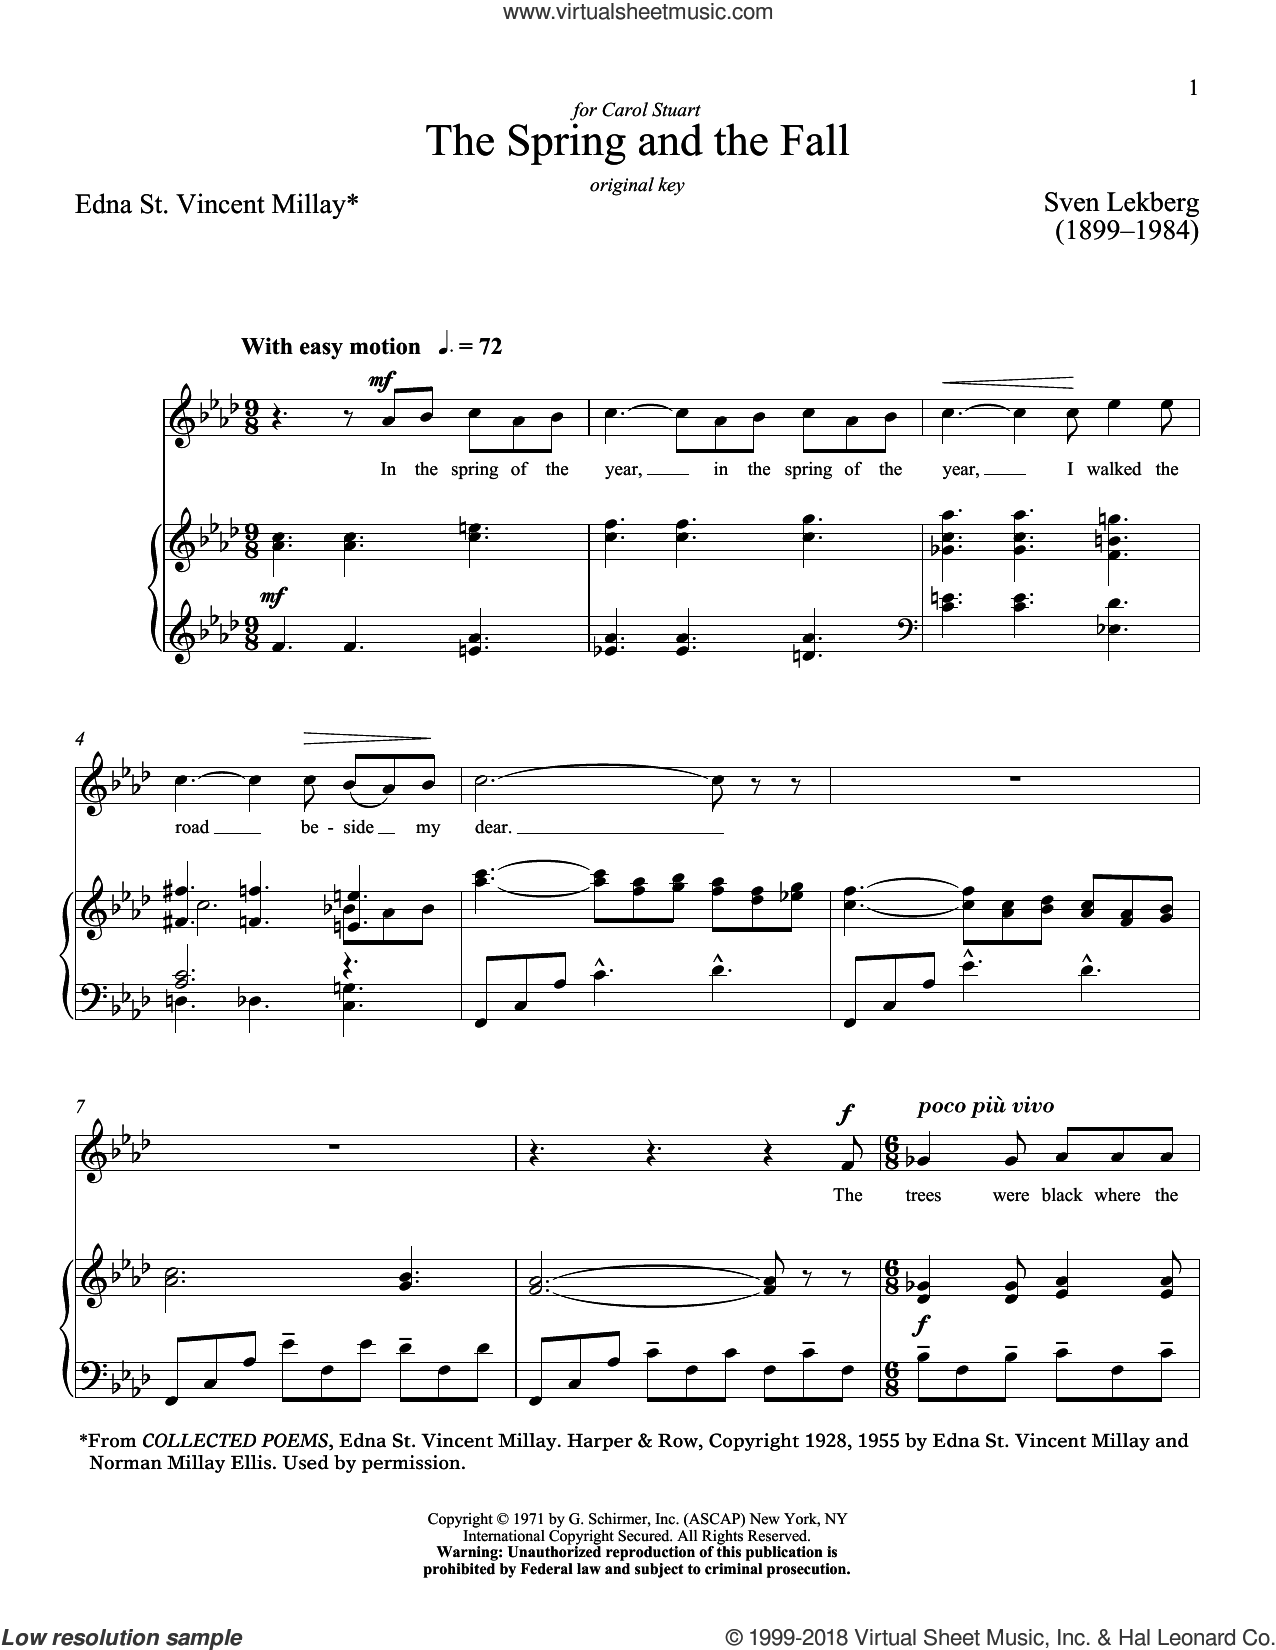 The Spring And The Fall sheet music for voice and piano (High Voice) by Richard Walters, Edna St. Vincent Millay and Sven Lekberg, classical score, intermediate